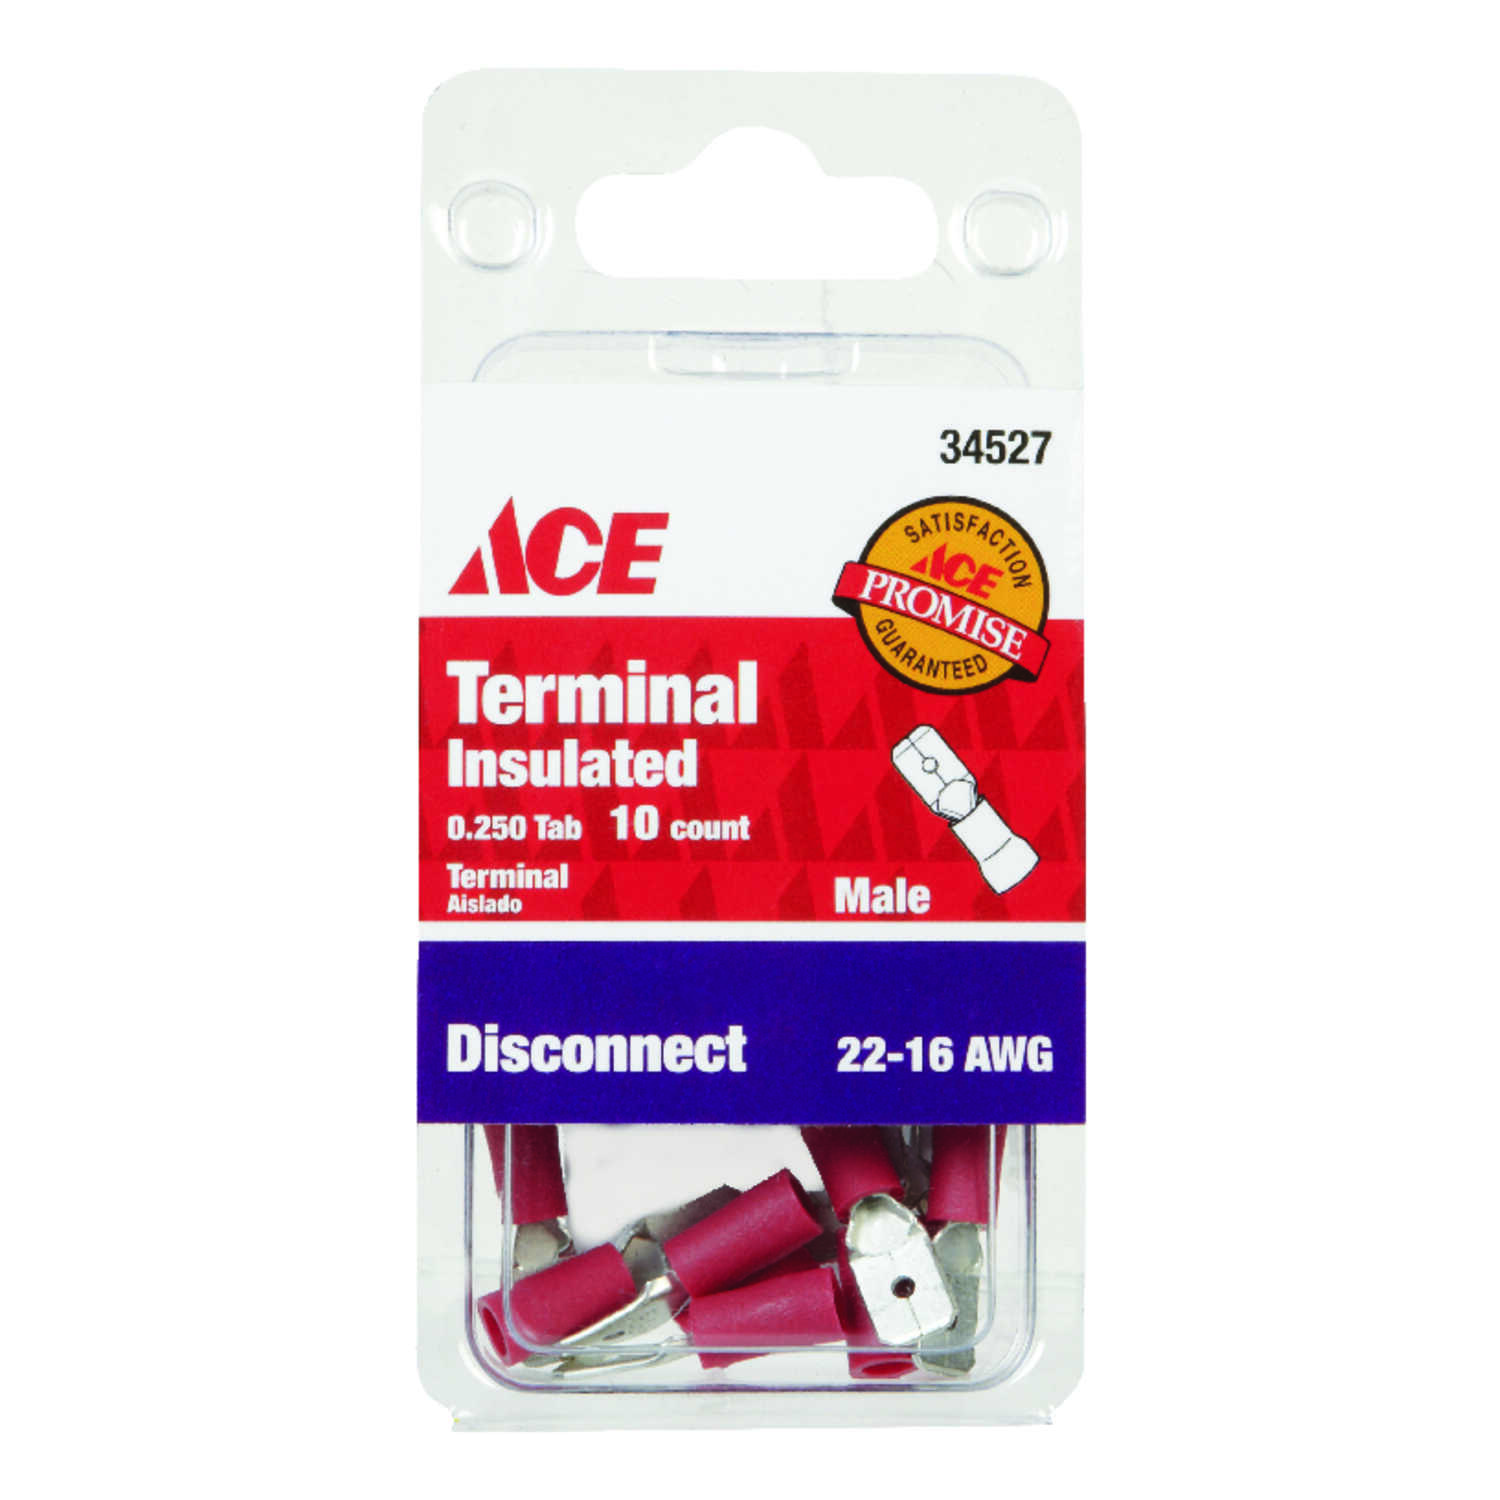 Ace  Male Disconnect  22-16 AWG 10  Insulated Wire